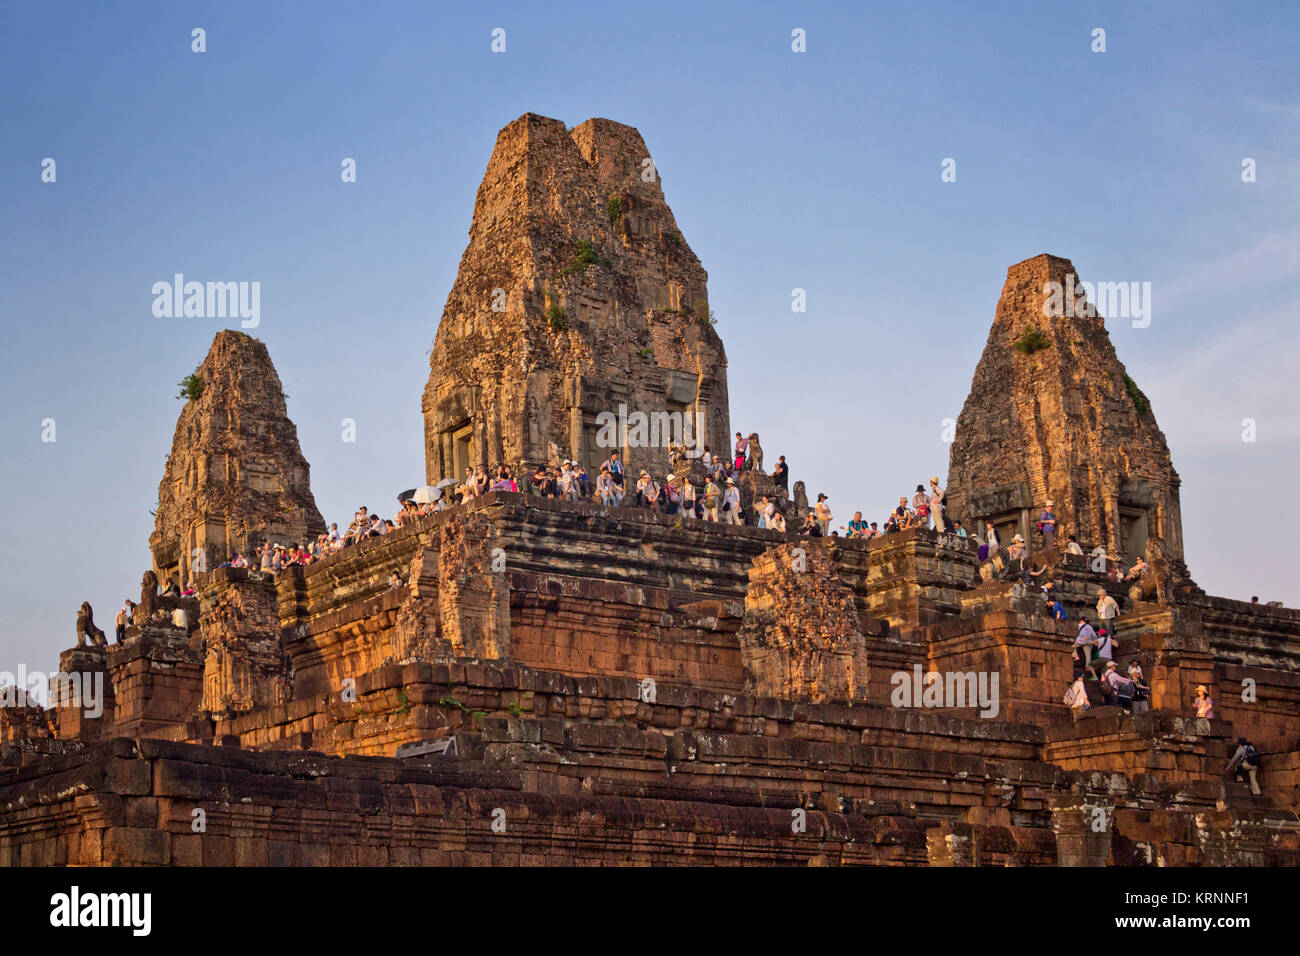 Temple Pre Rup at sunset, Tourist crowd, Angkor Wat , Cambodia, Asia, - Stock Image